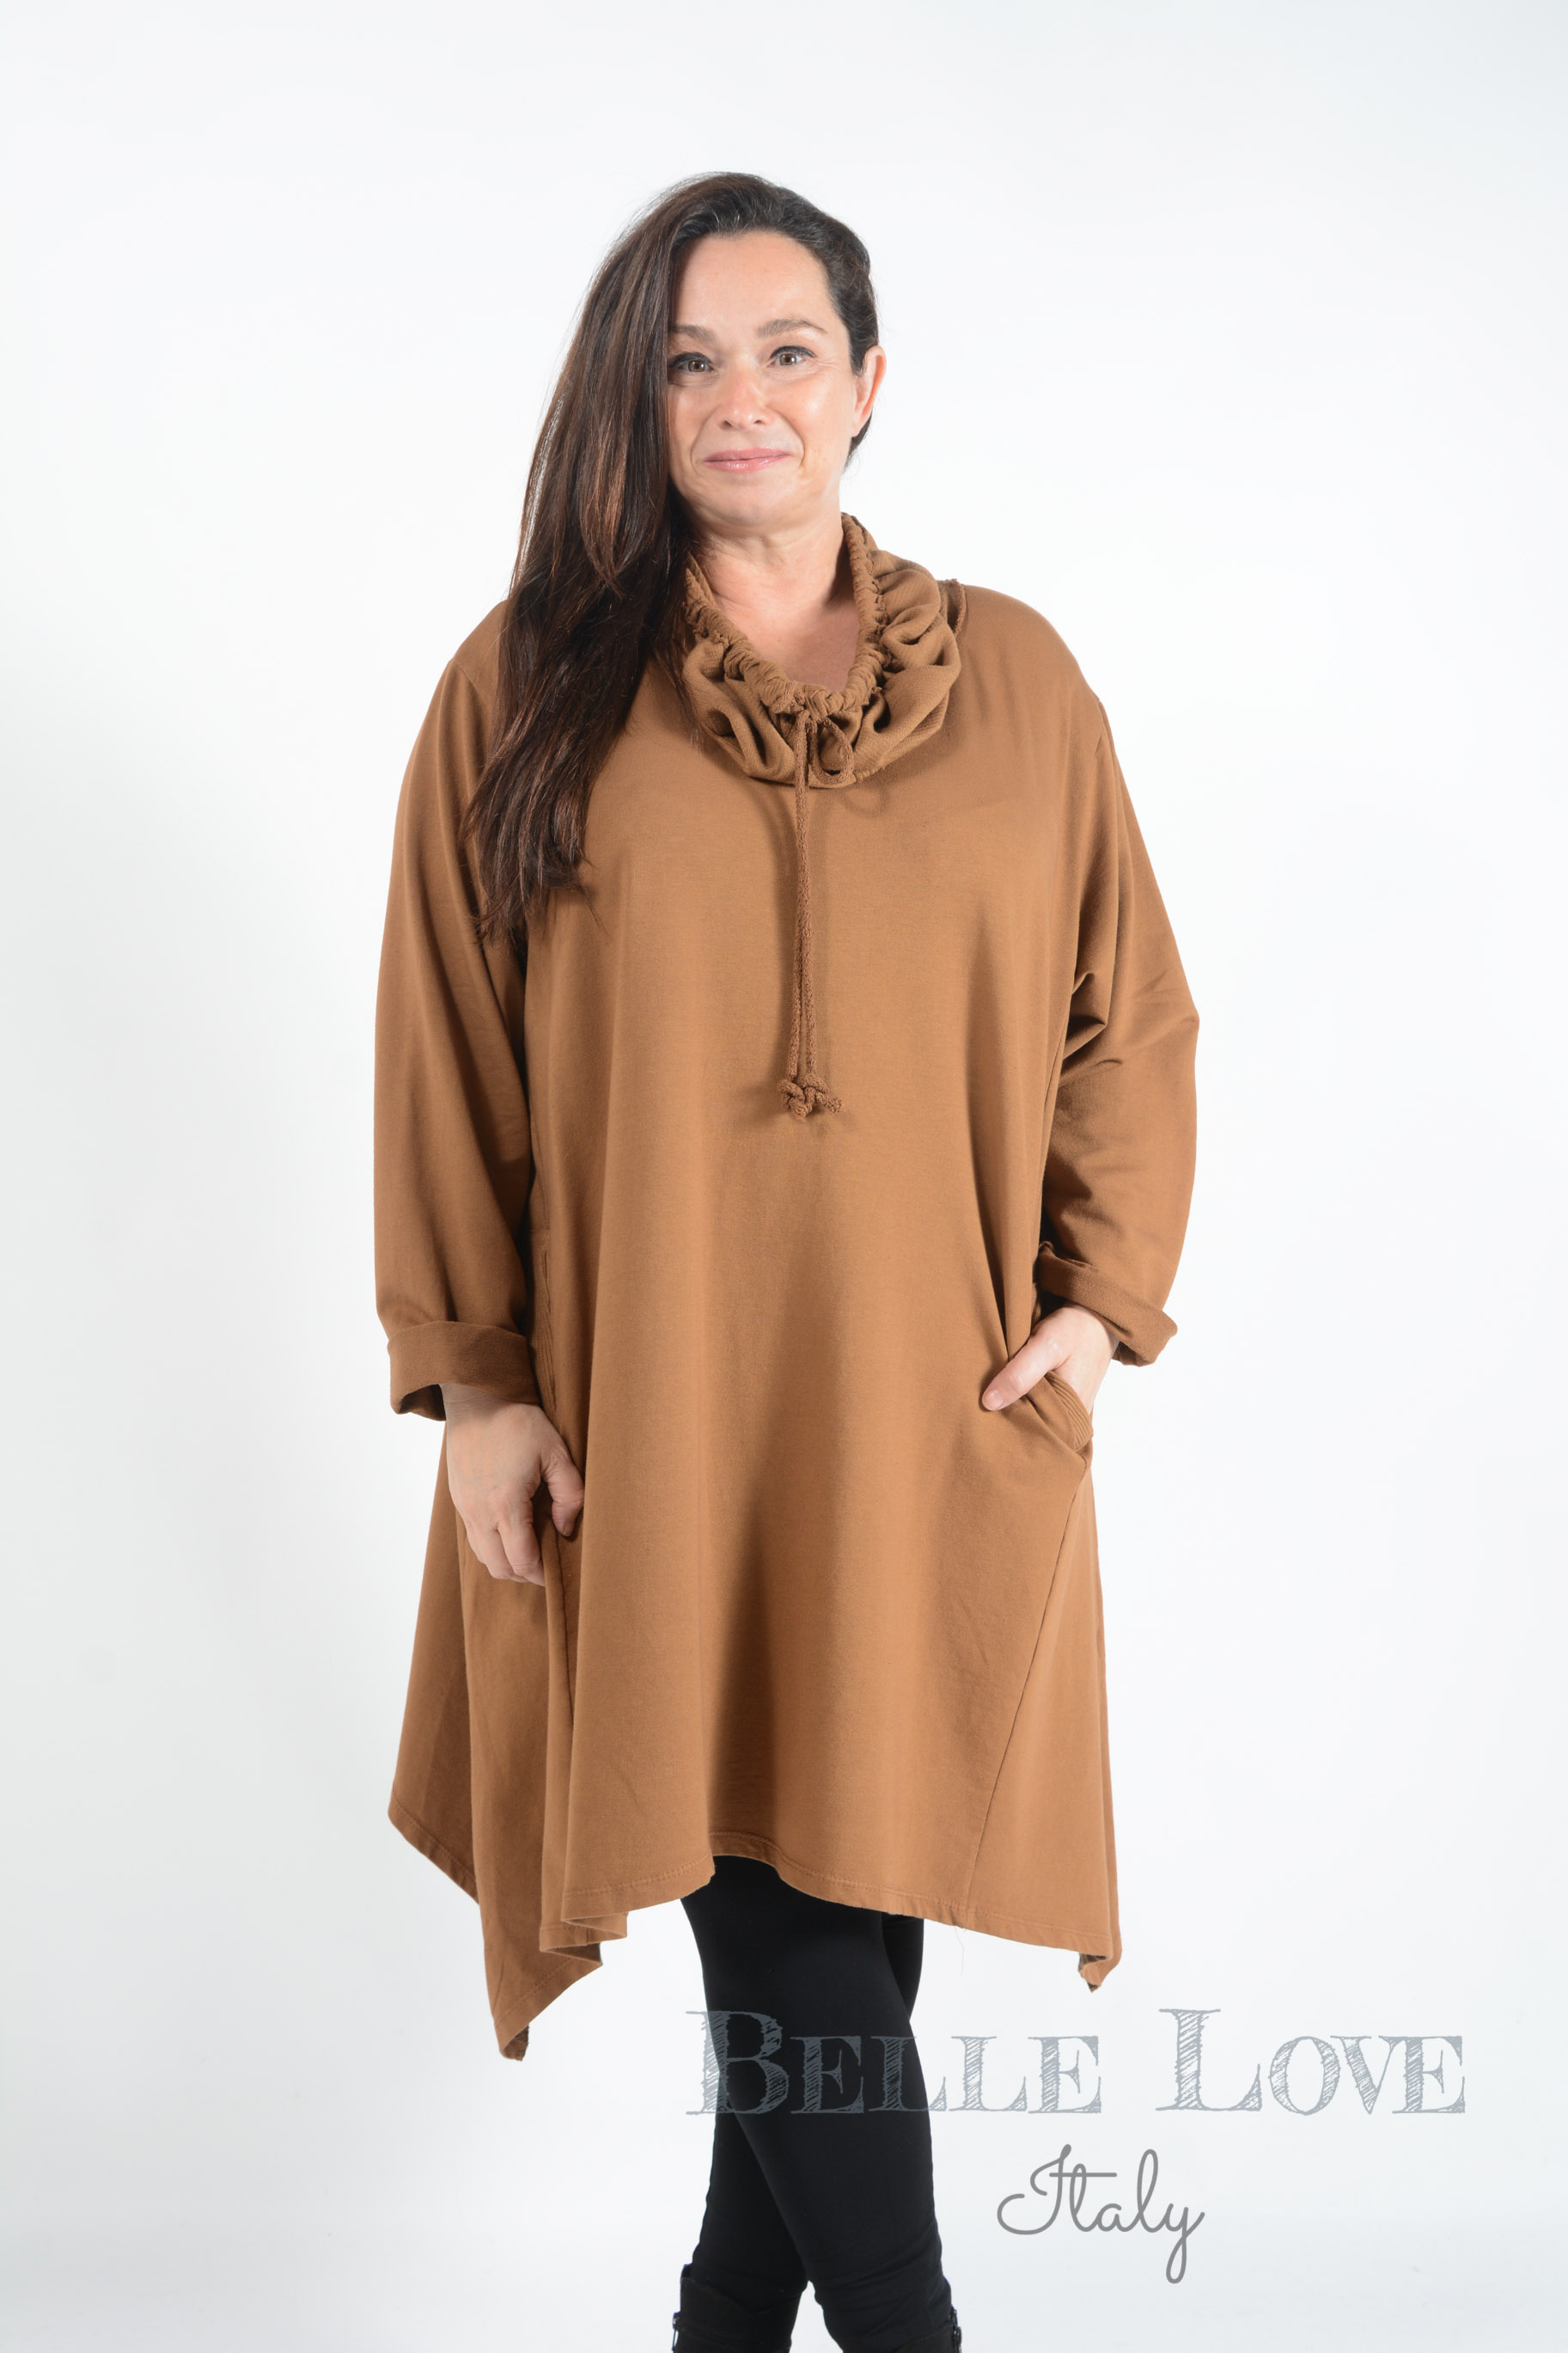 Belle Love Italy Shelby Ribbed Tunic